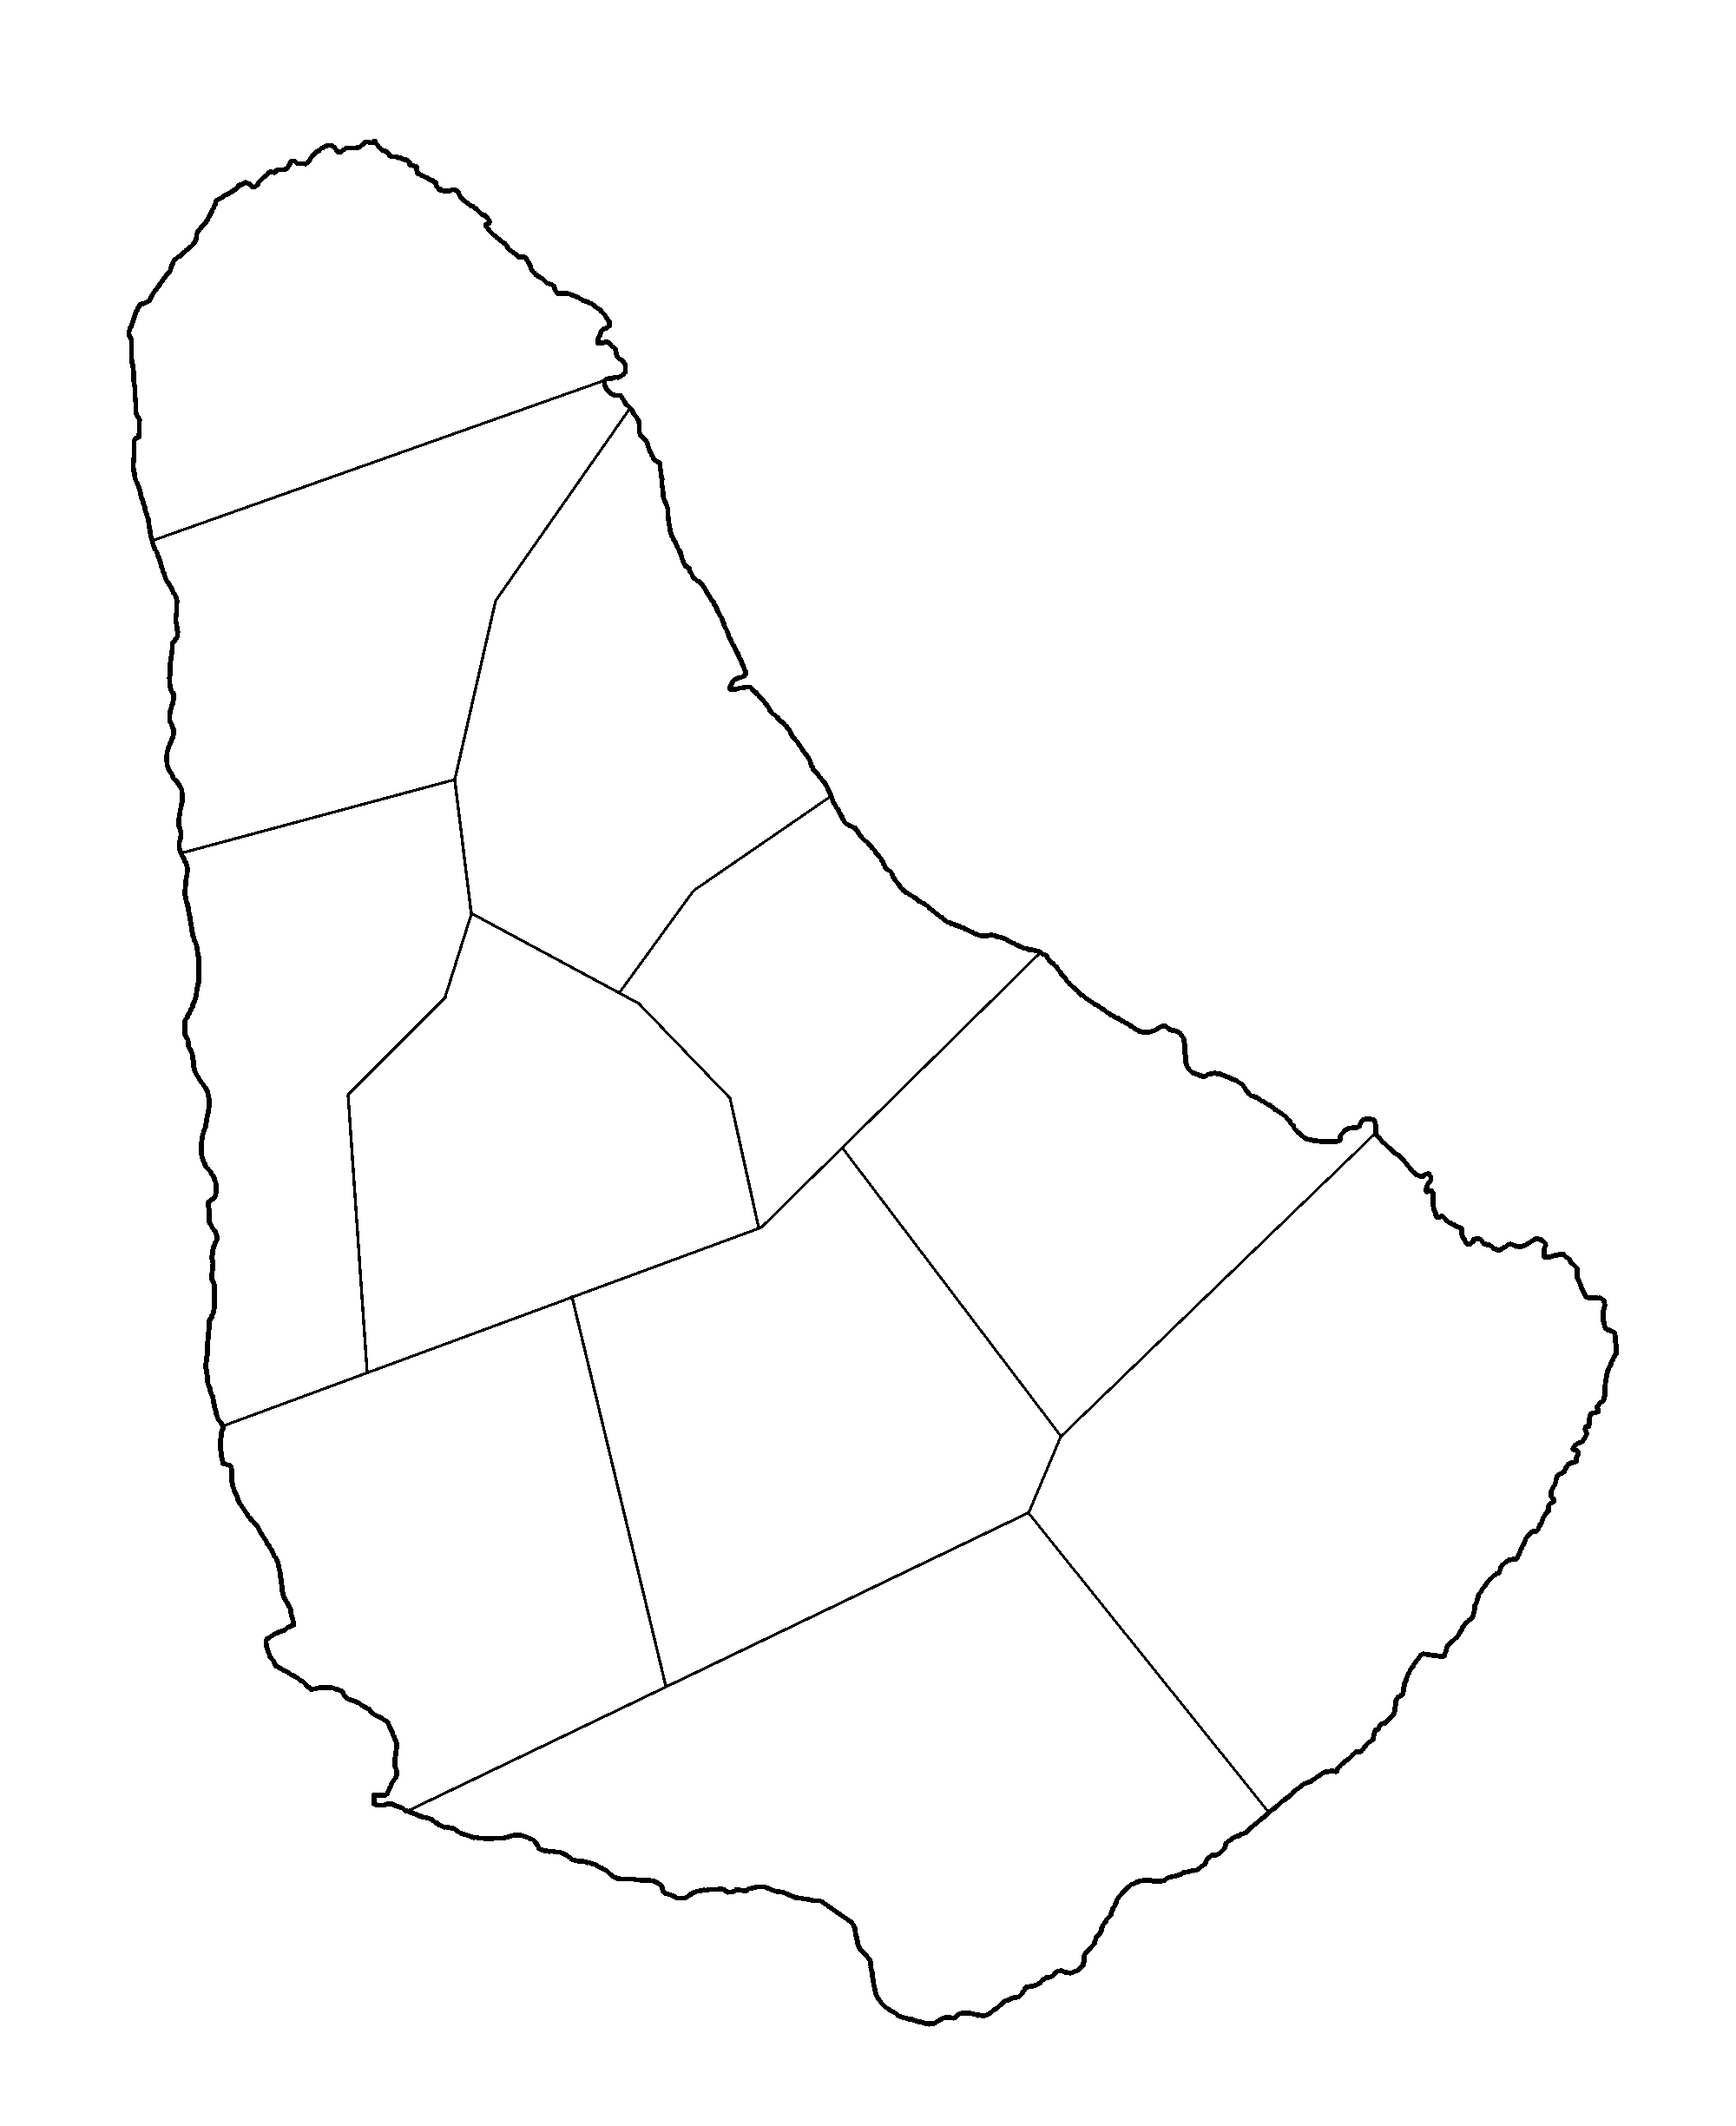 barbados_parishes_blank